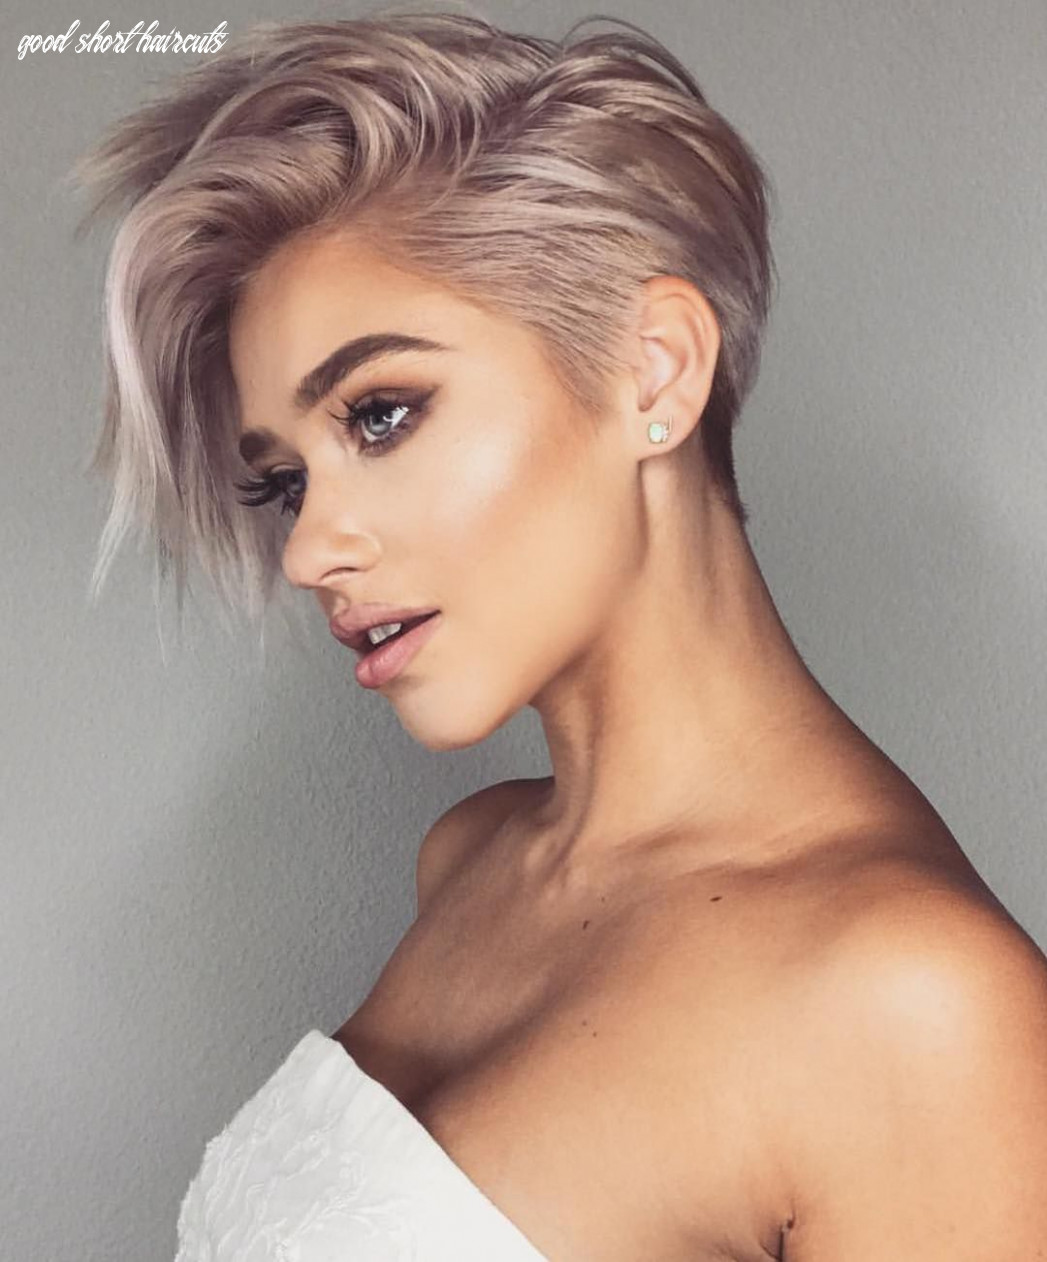 12 best short haircuts for women – eazy glam good short haircuts